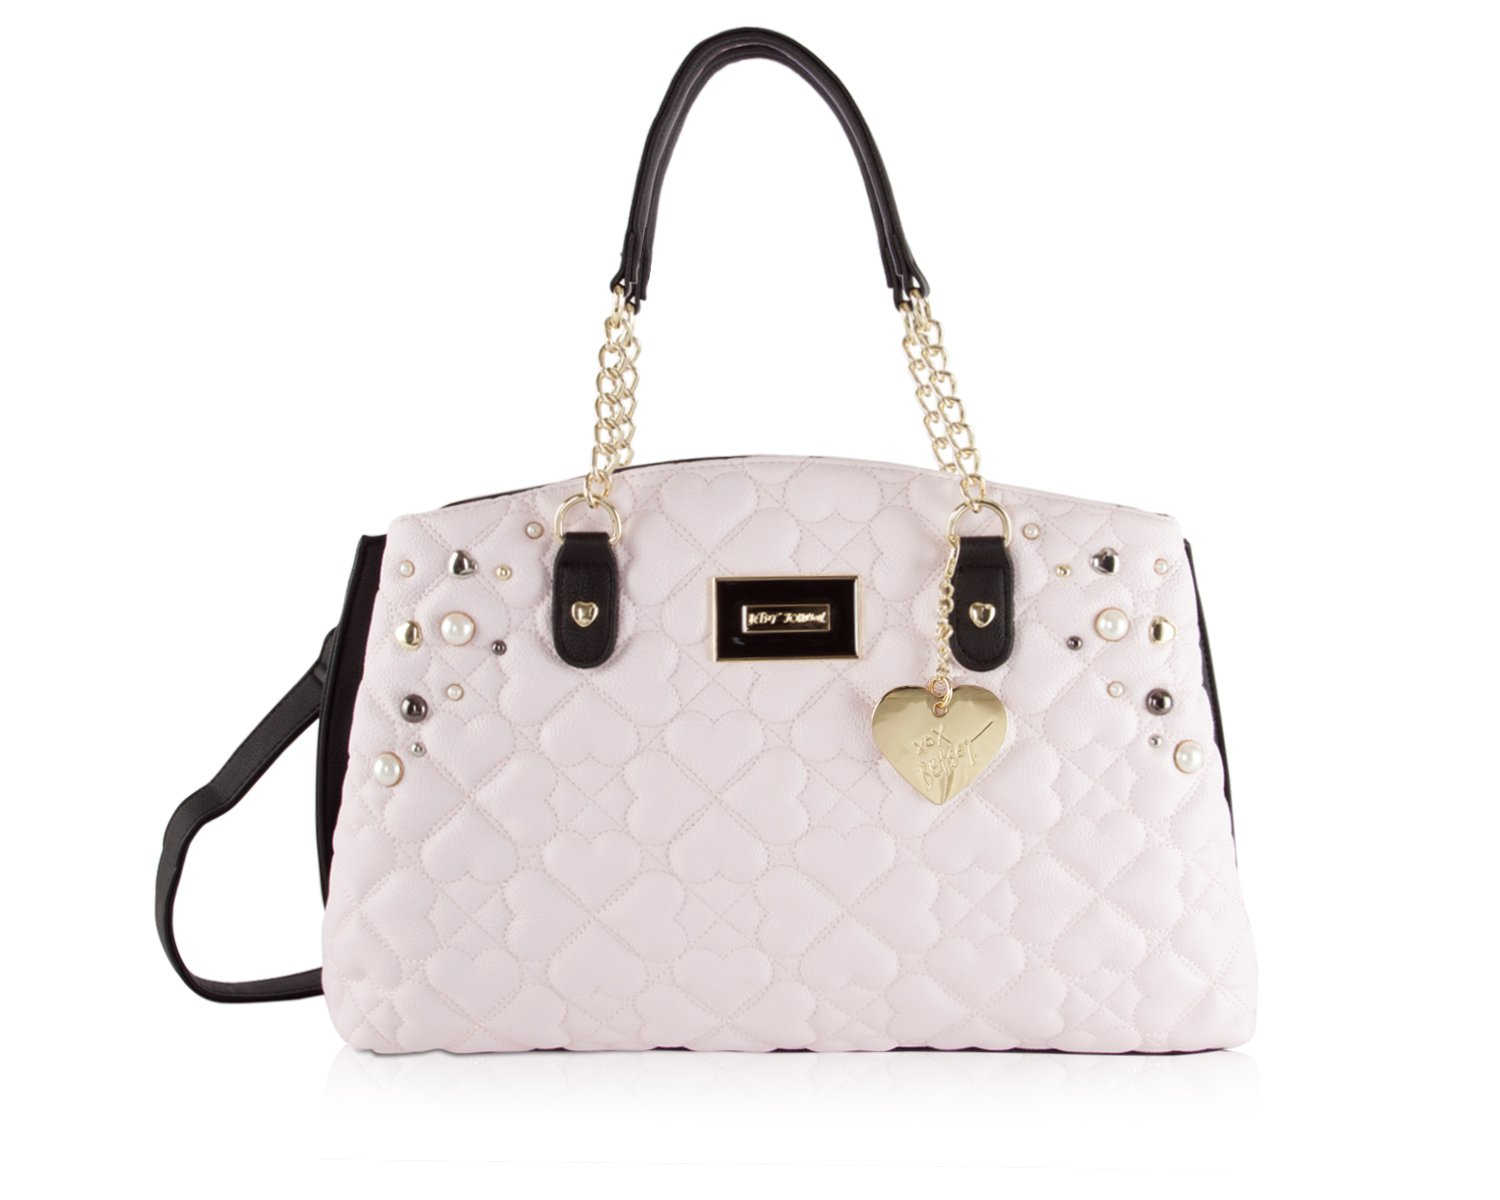 Betsey Johnson Multi Compartment Satchel in Blush, Tote, Purse